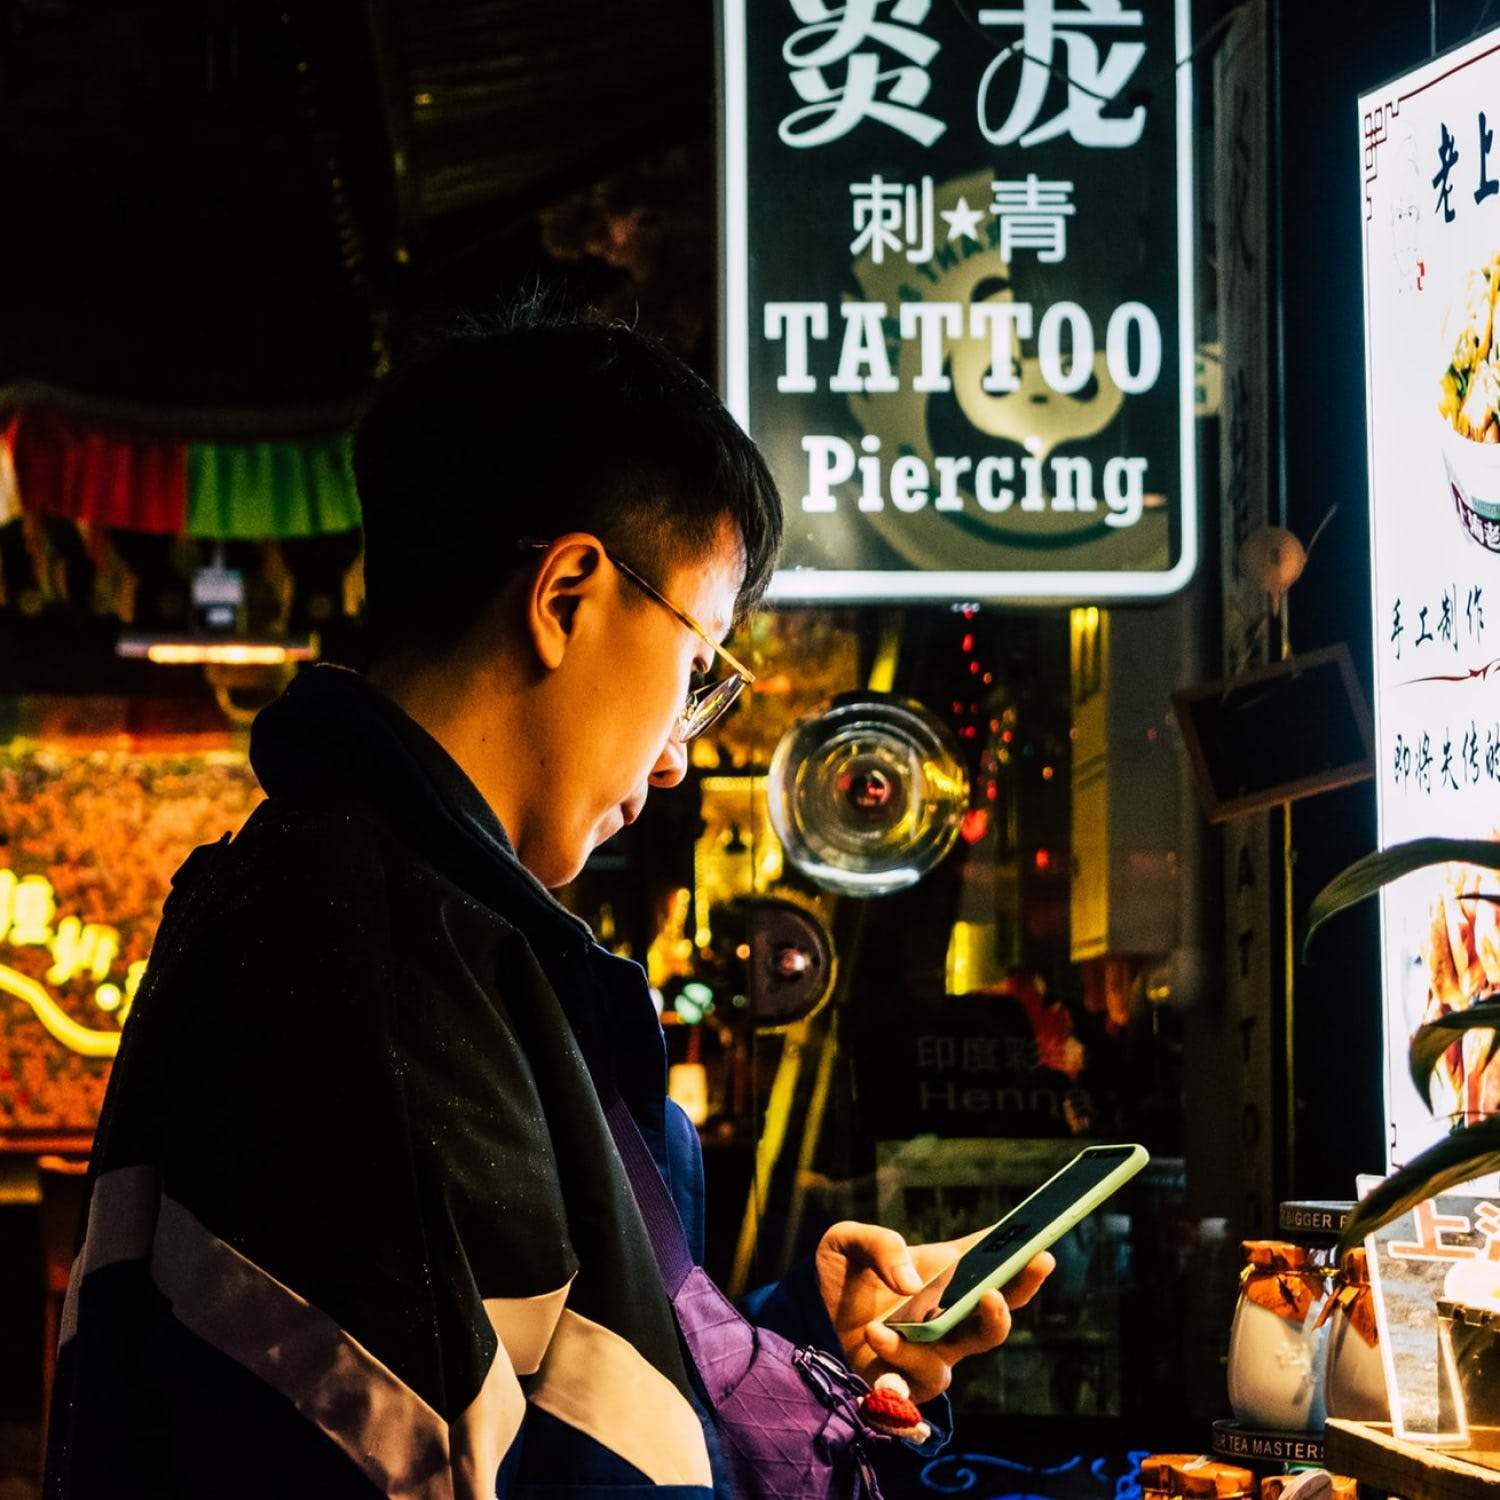 China Is Miles Ahead: A Look Into Life Transformed by Technology